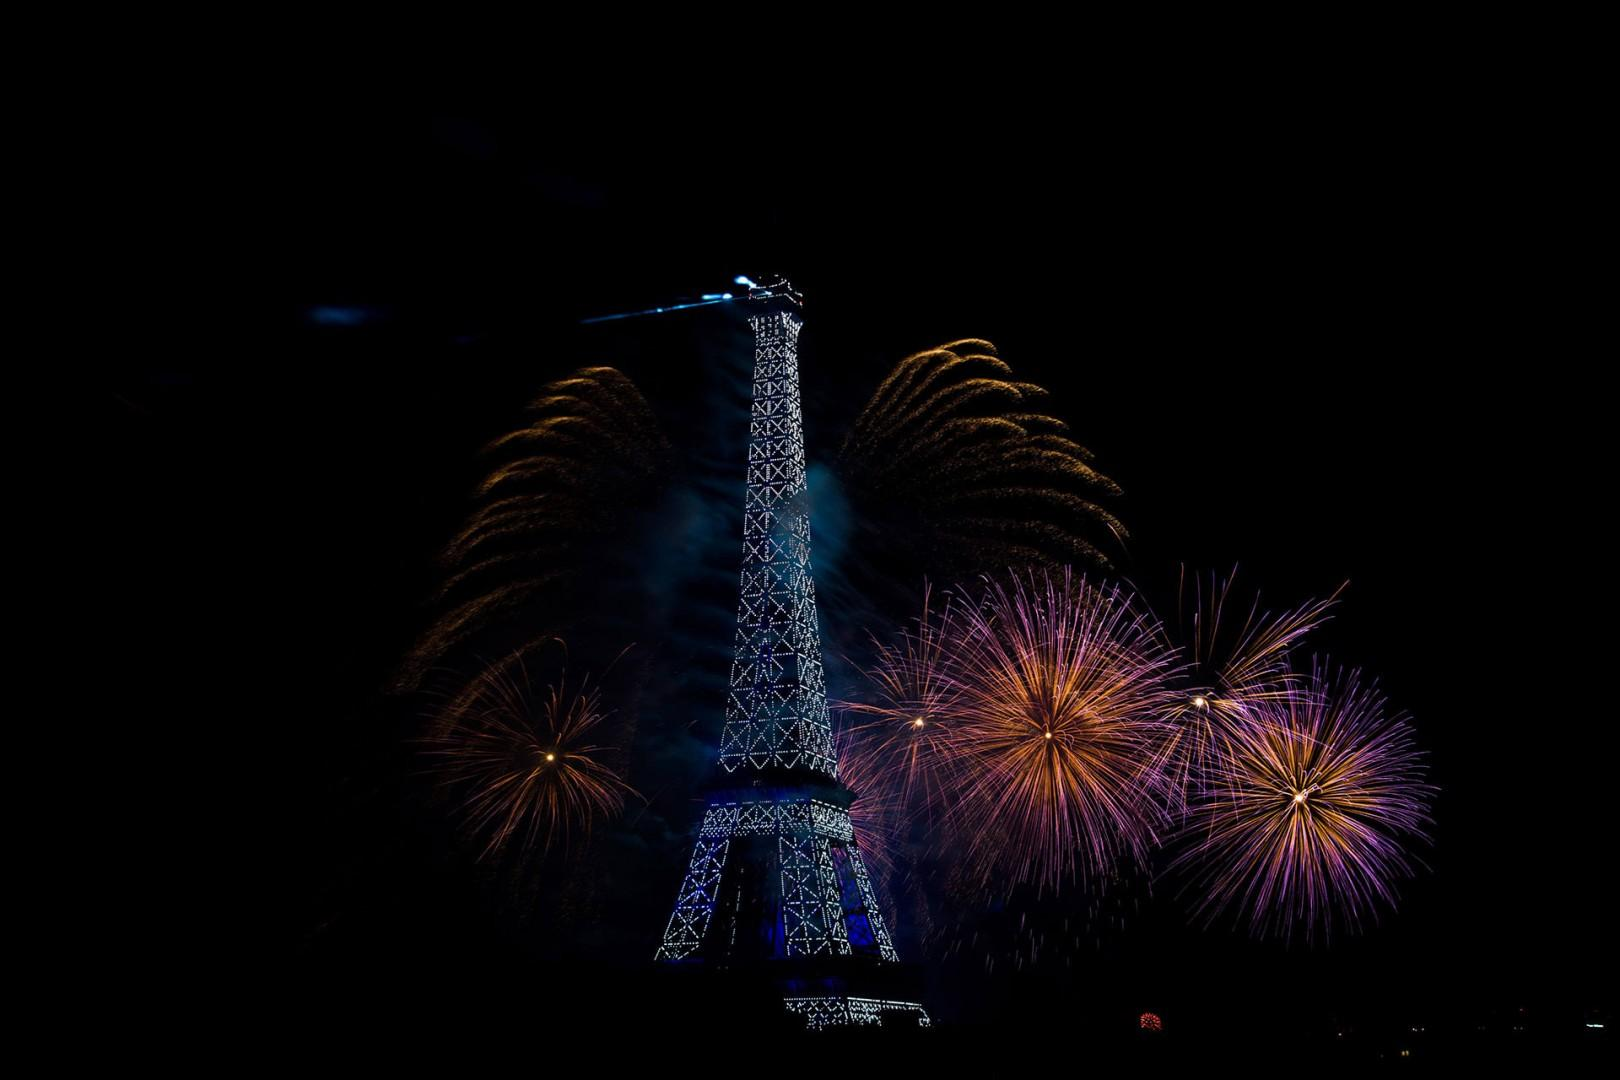 World class view of the Bastille day fireworks!